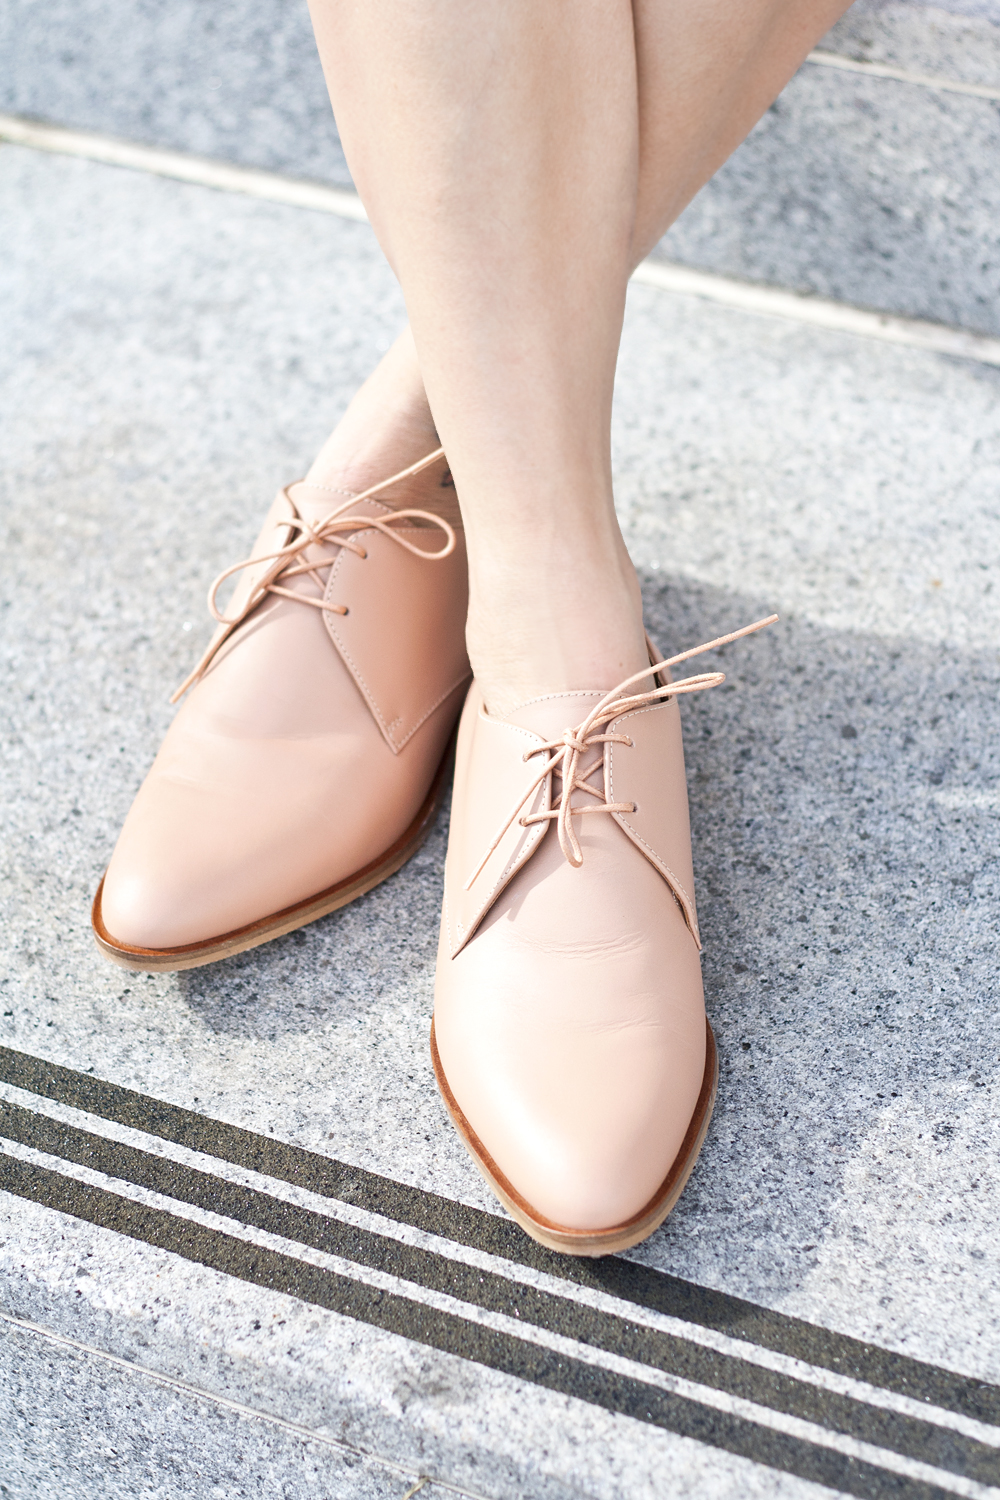 09everlane-leather-loafers-blush-nude-sf-style-fashion